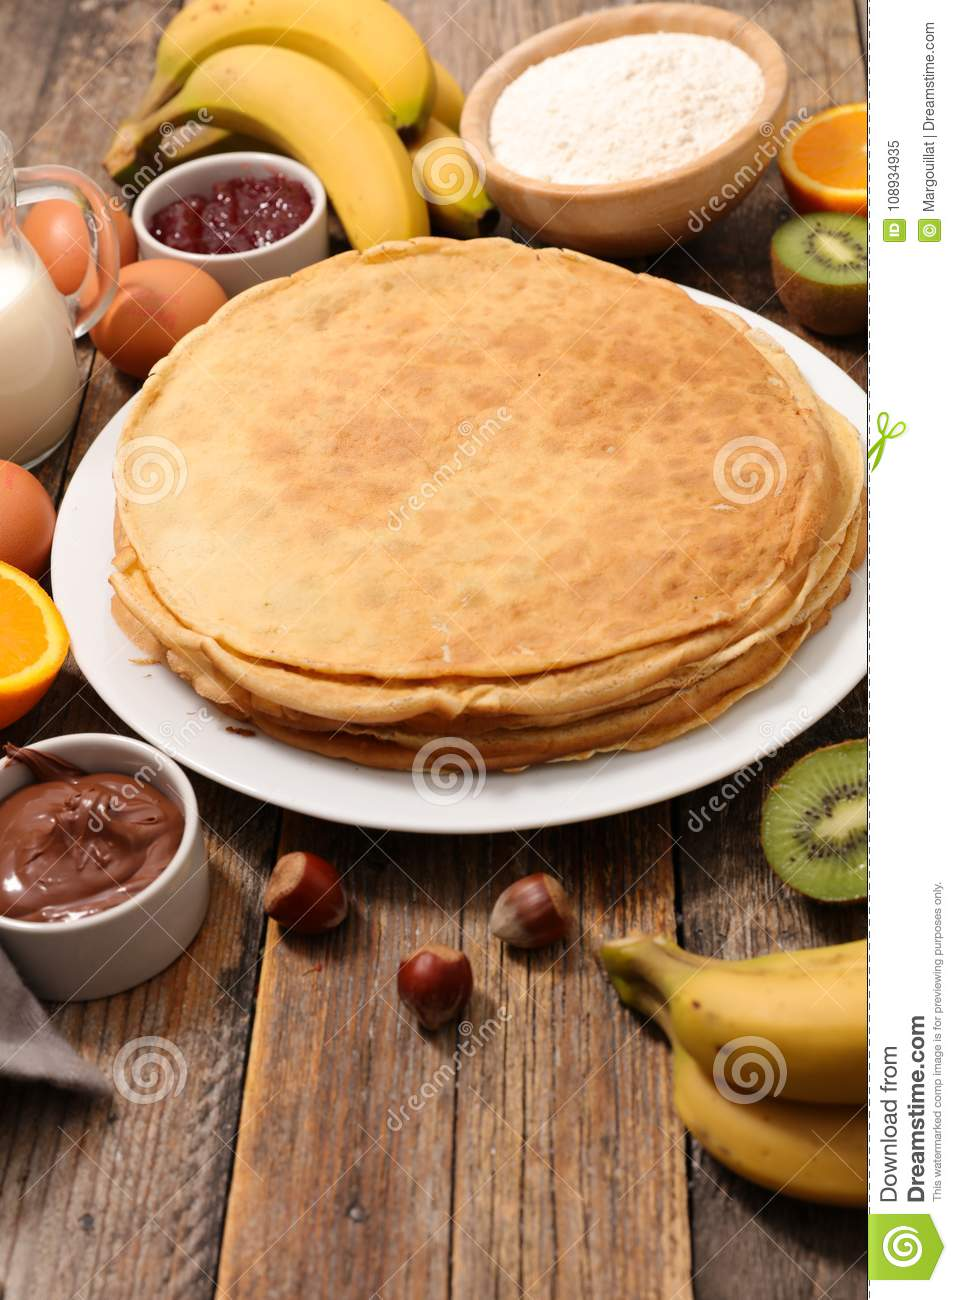 Homemade crepe and fruit